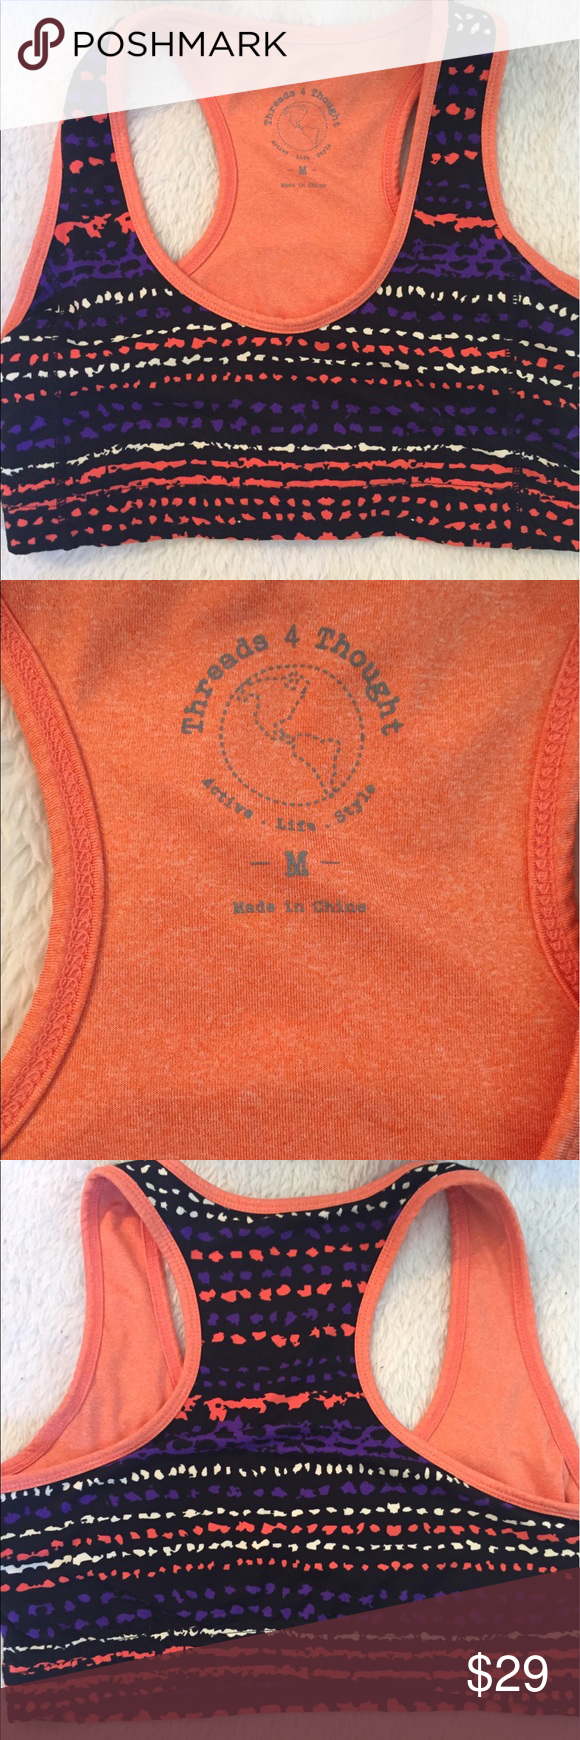 f8858c6a50 Threads 4 Thought colorful pattern sports bra